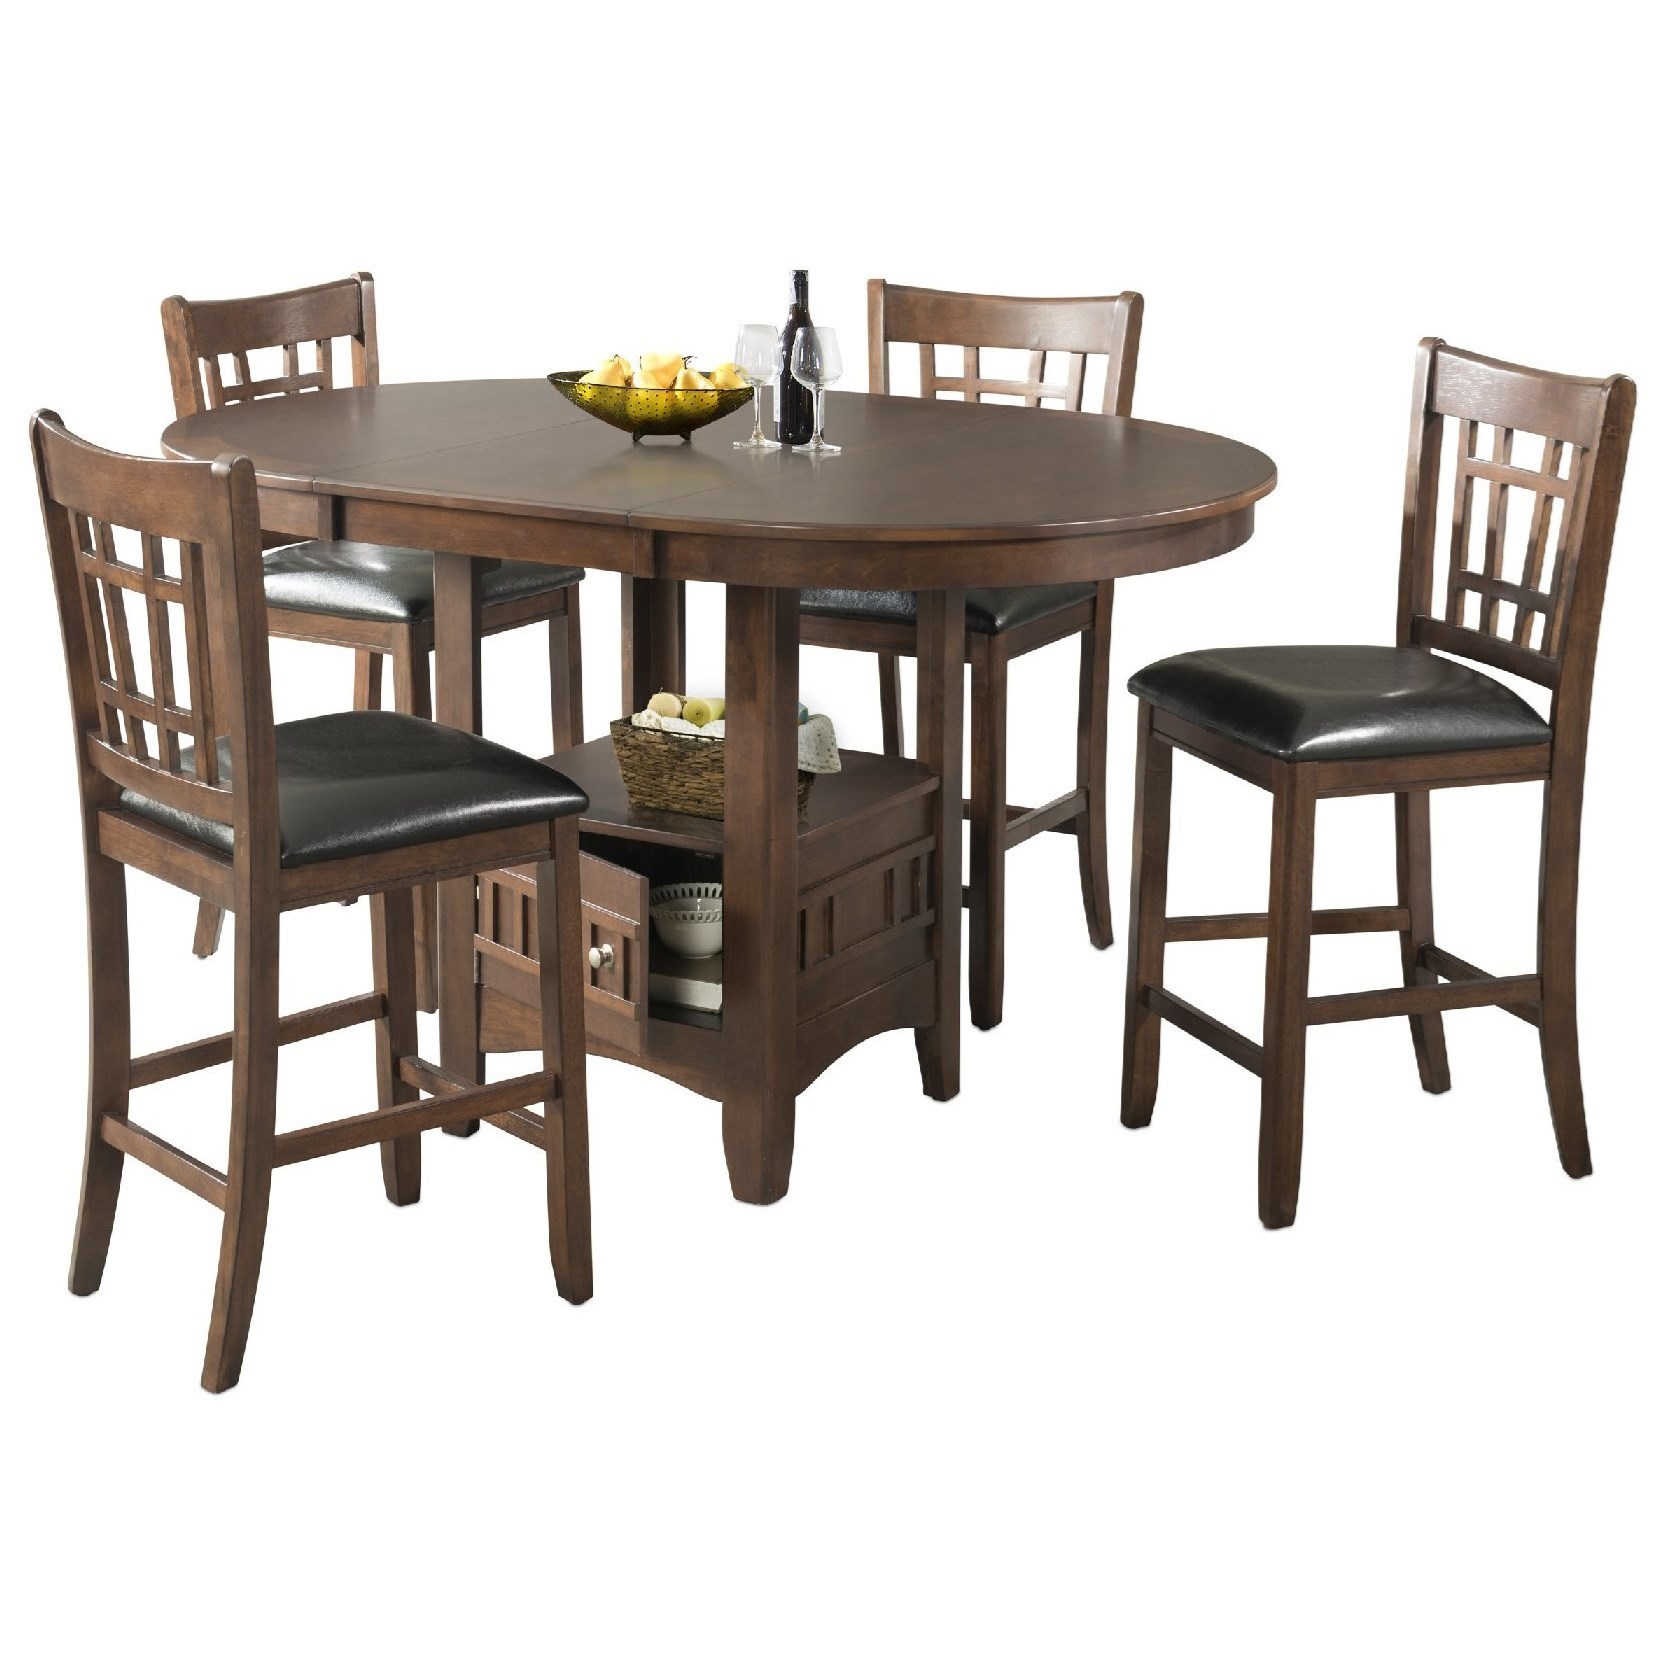 Max A Table Max Pub Table With Storage And Leaf Dream Home Furniture